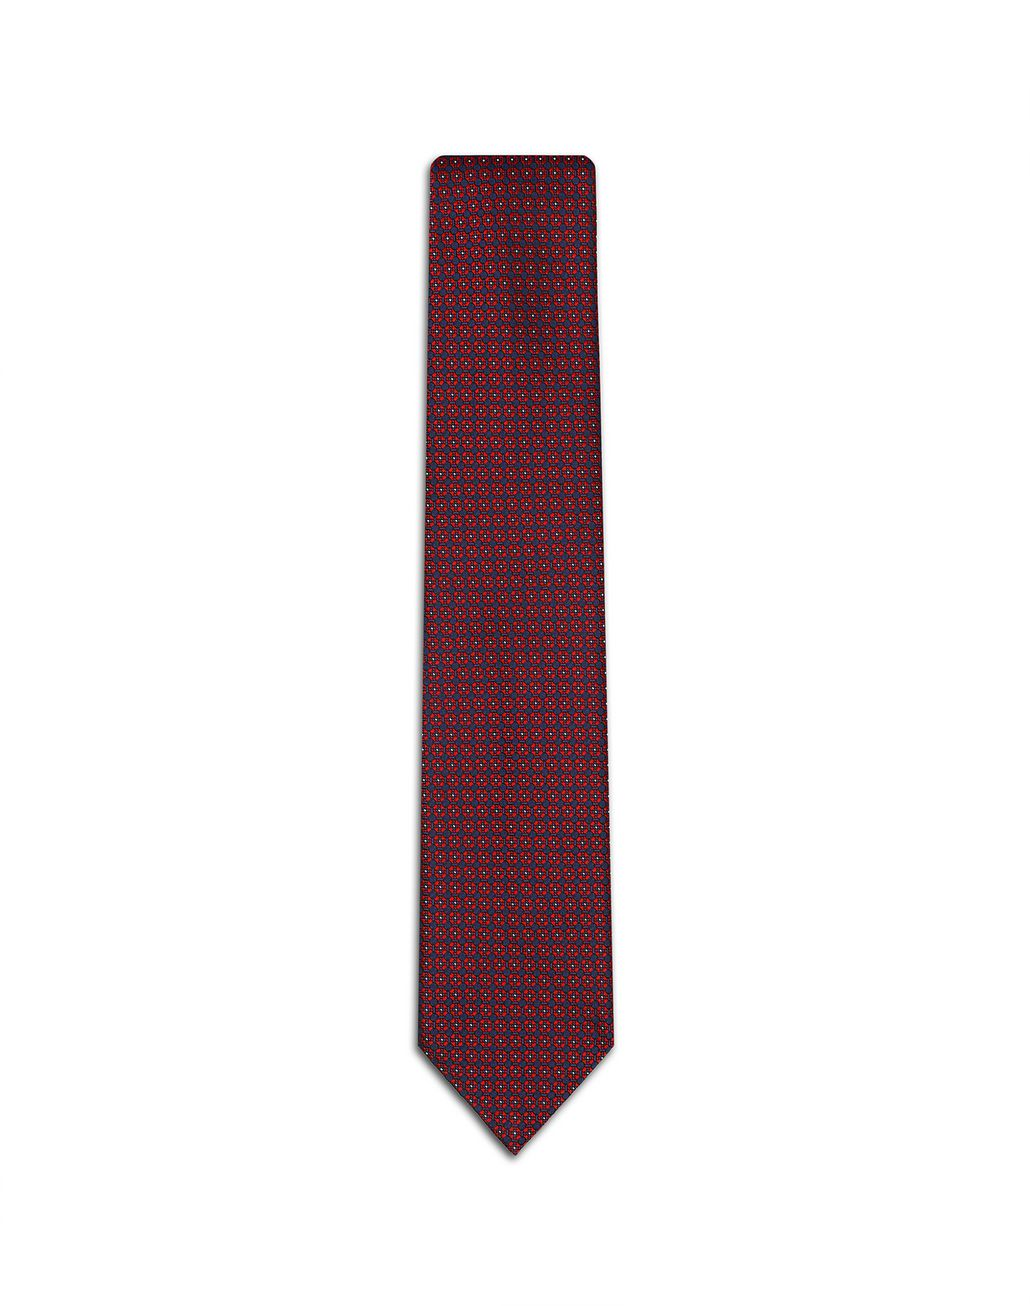 BRIONI Cravate avec Motif Miniature Rouge Cravate Homme f